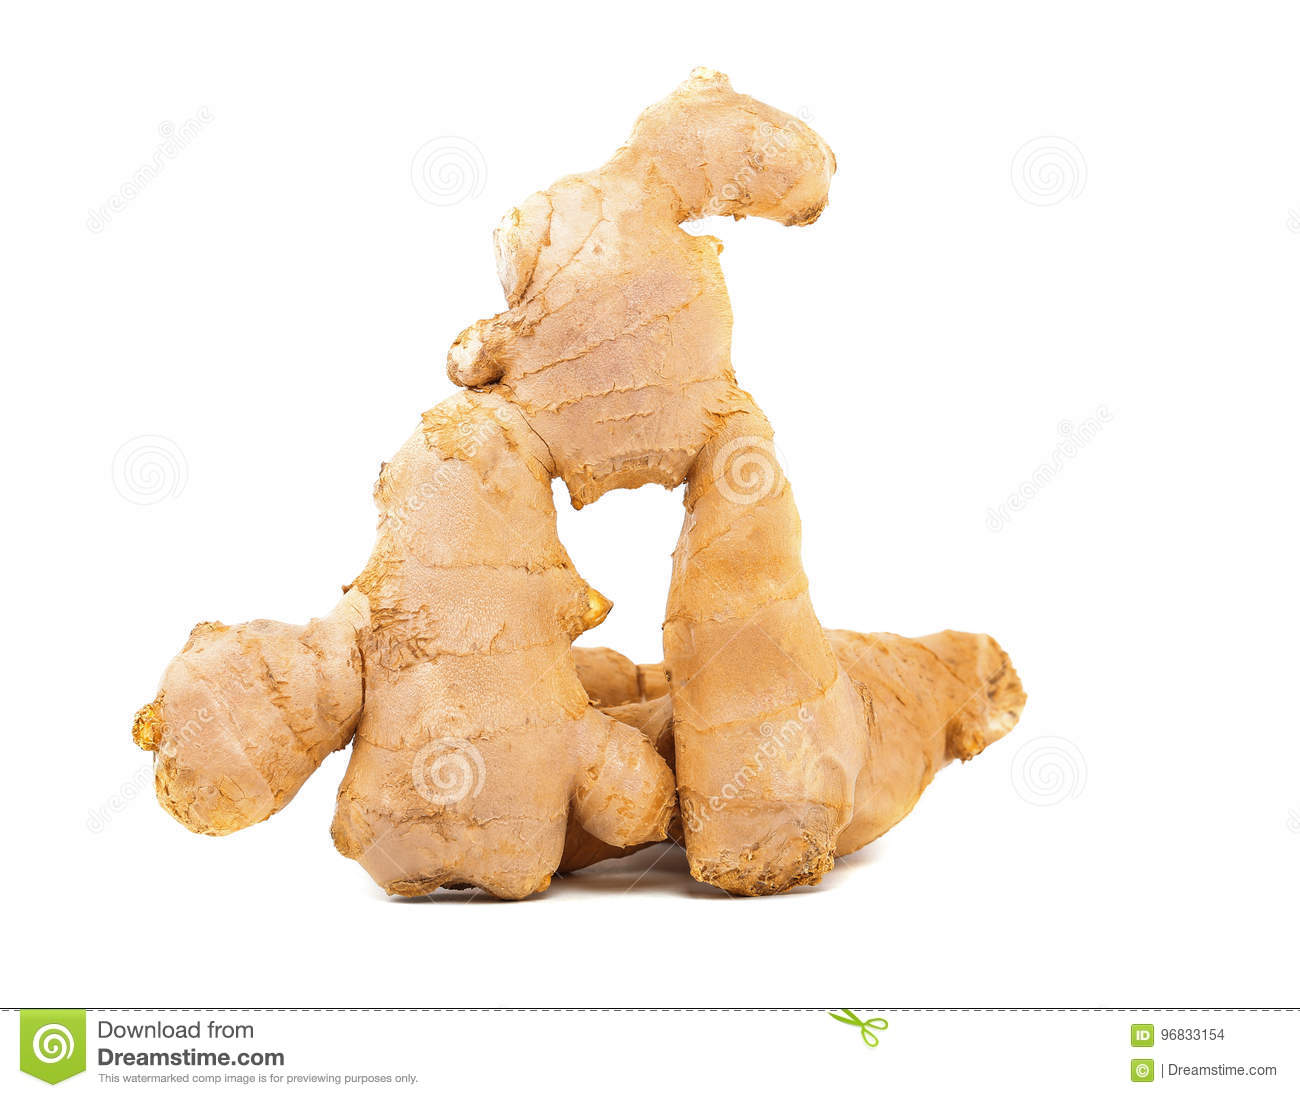 Close-up of a healthy and nutritious ginger root. A brown fresh root, on the white background.